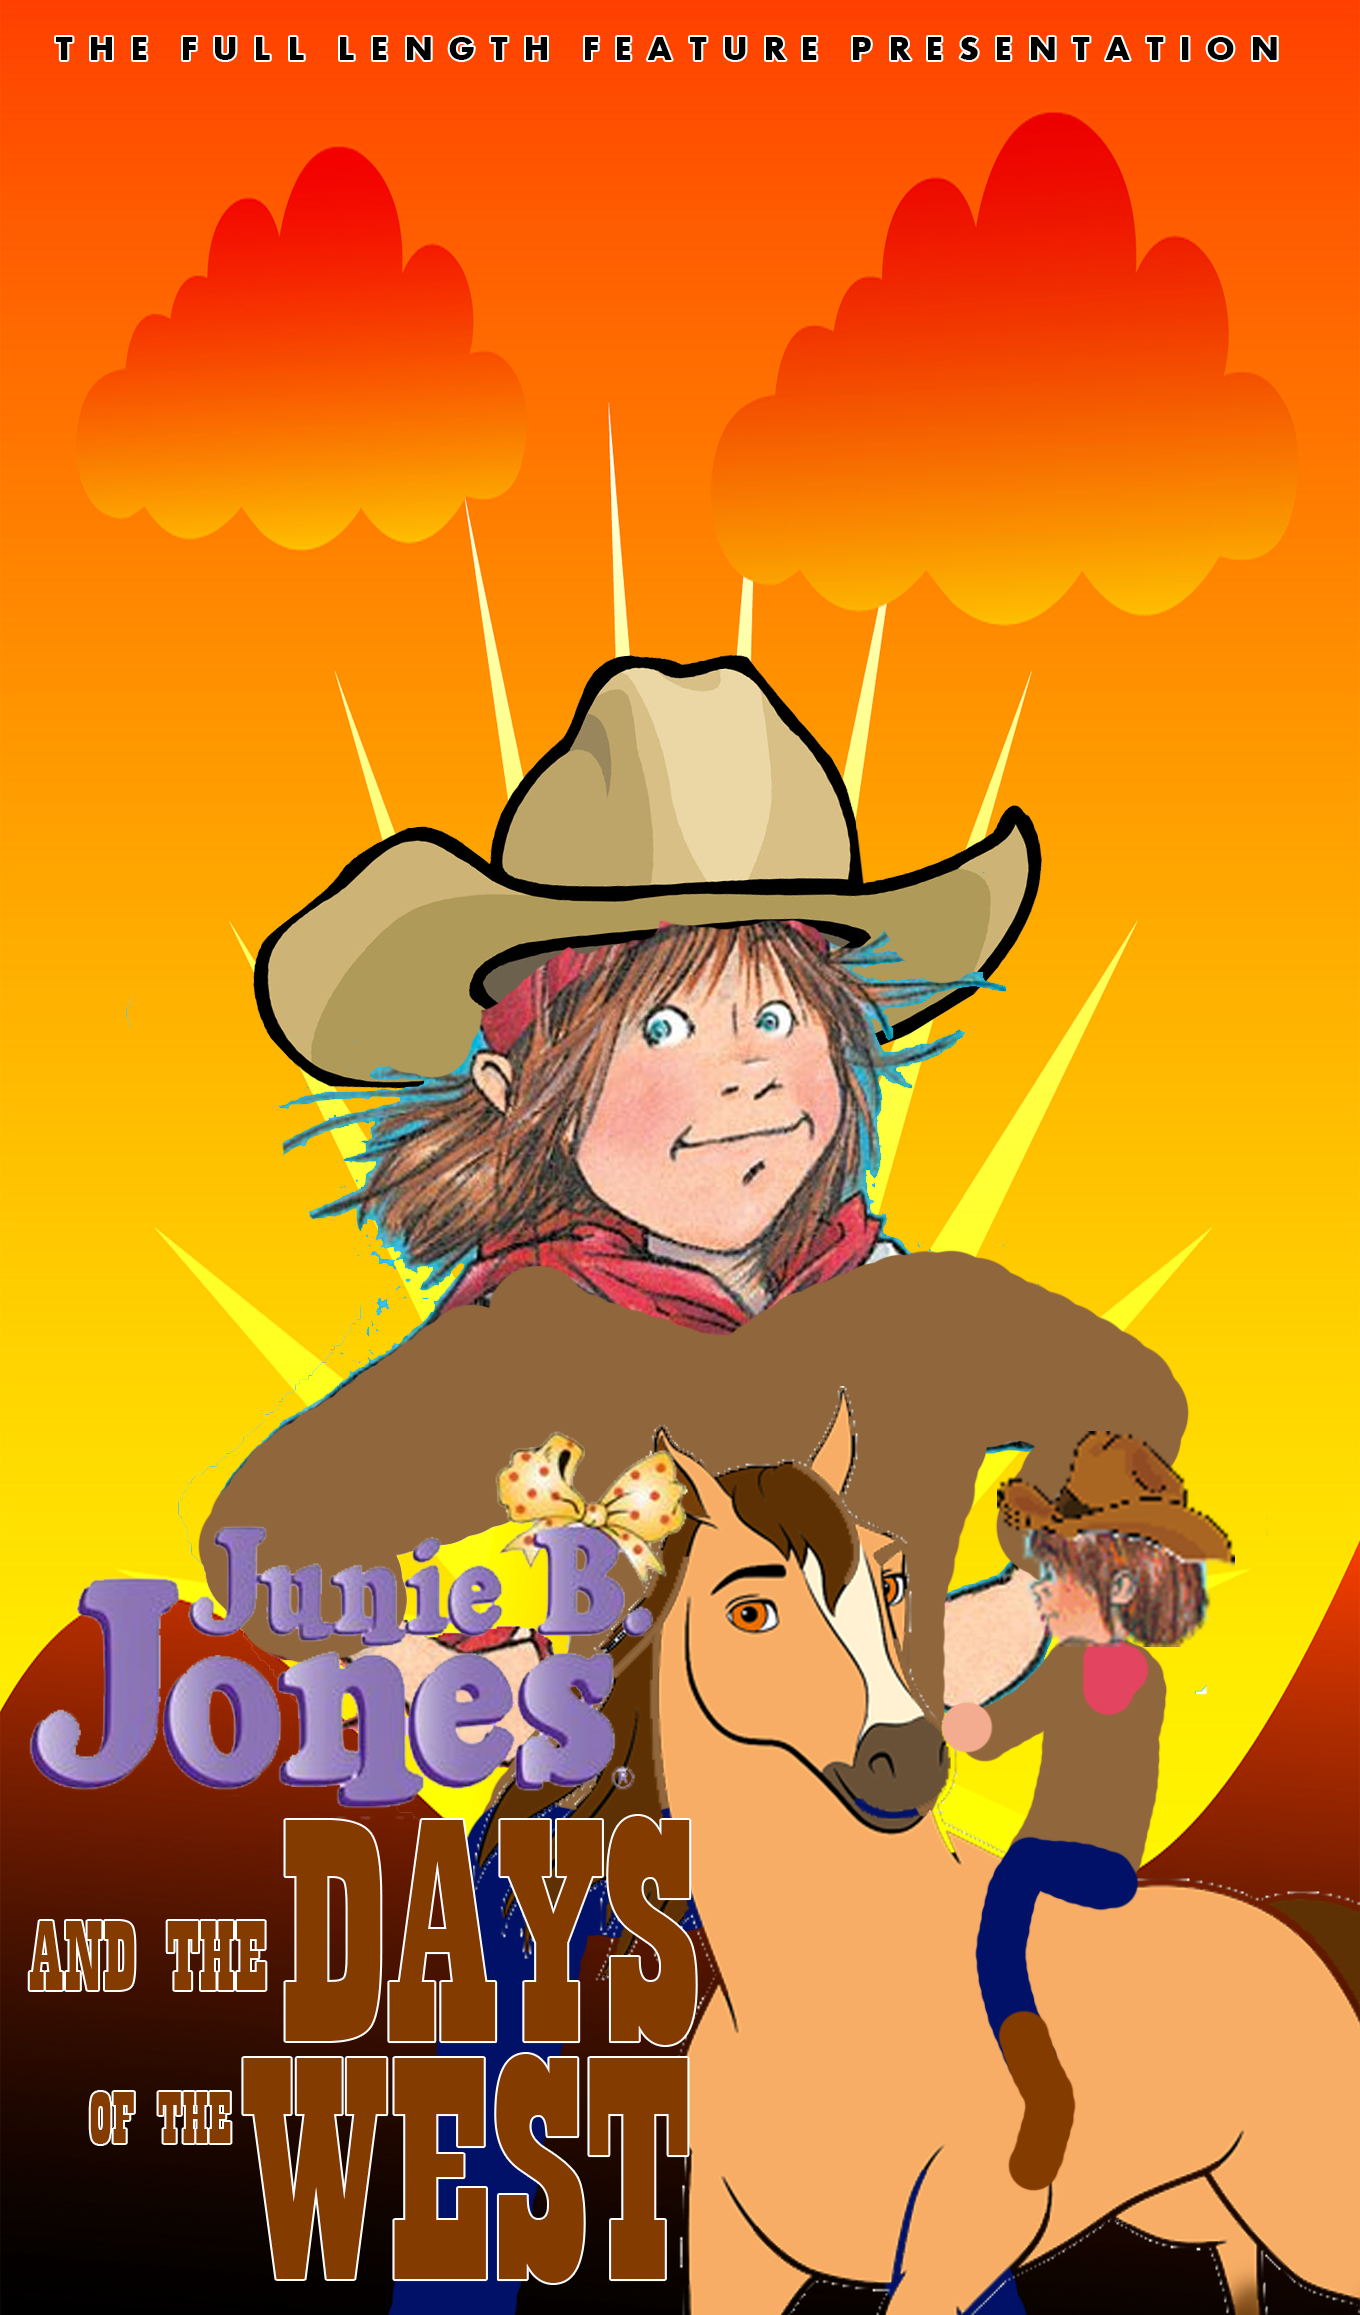 Junie B. Jones and the Days of the West (1998 VHS)